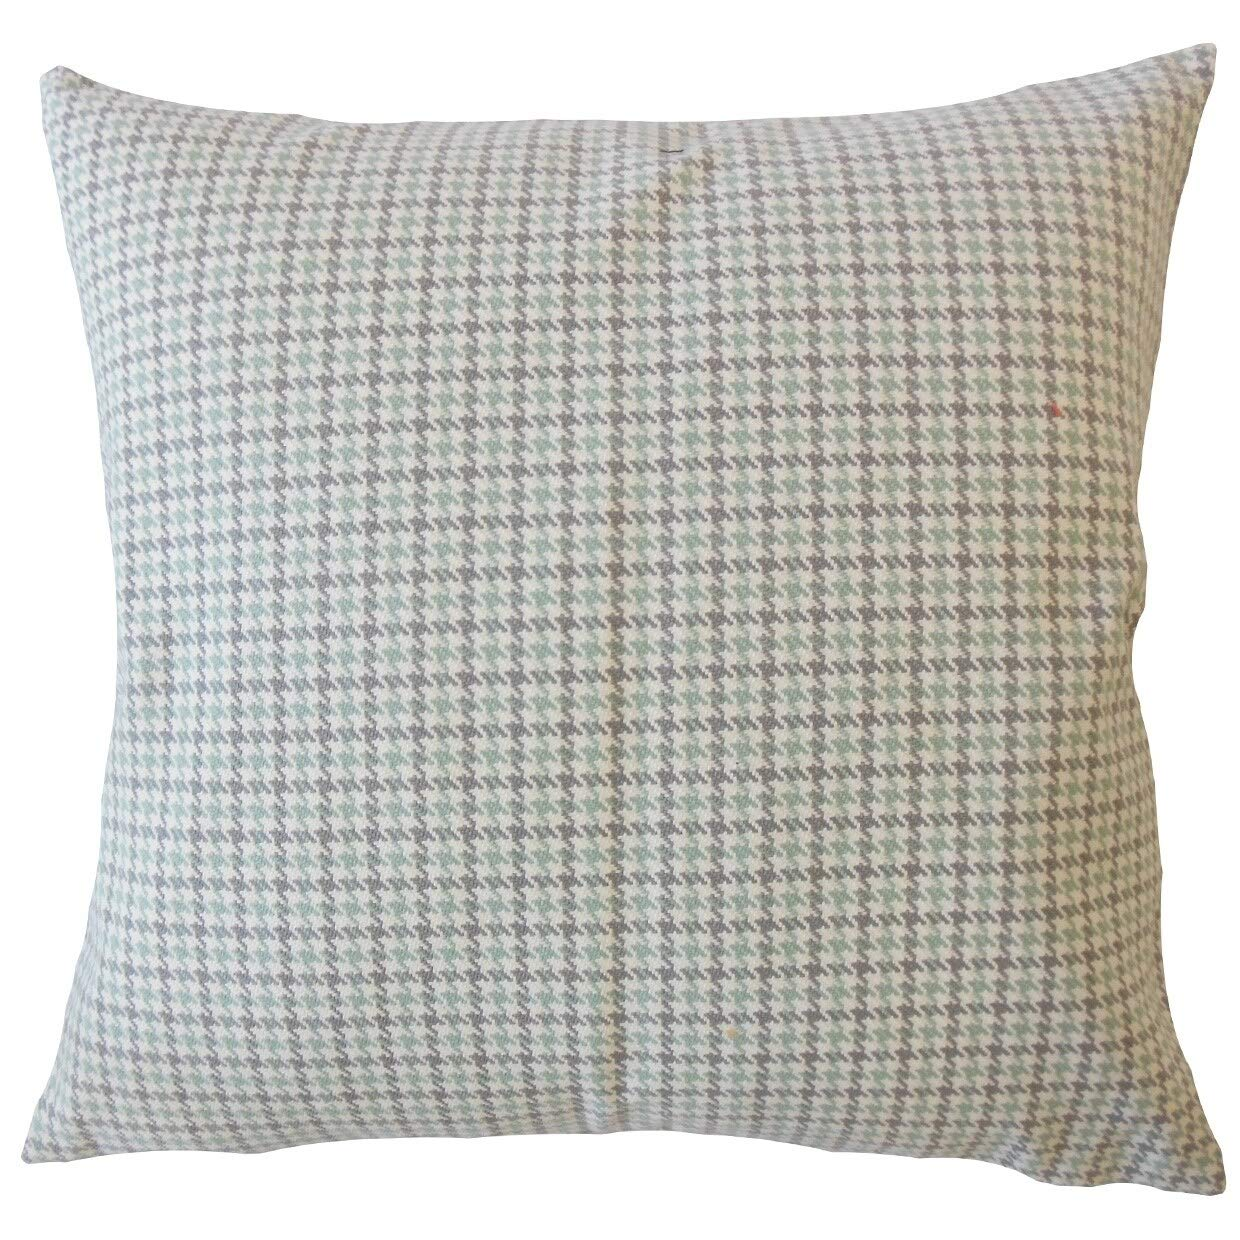 Amazon.com: The Pillow Collection Fallyn Houndstooth Down ...